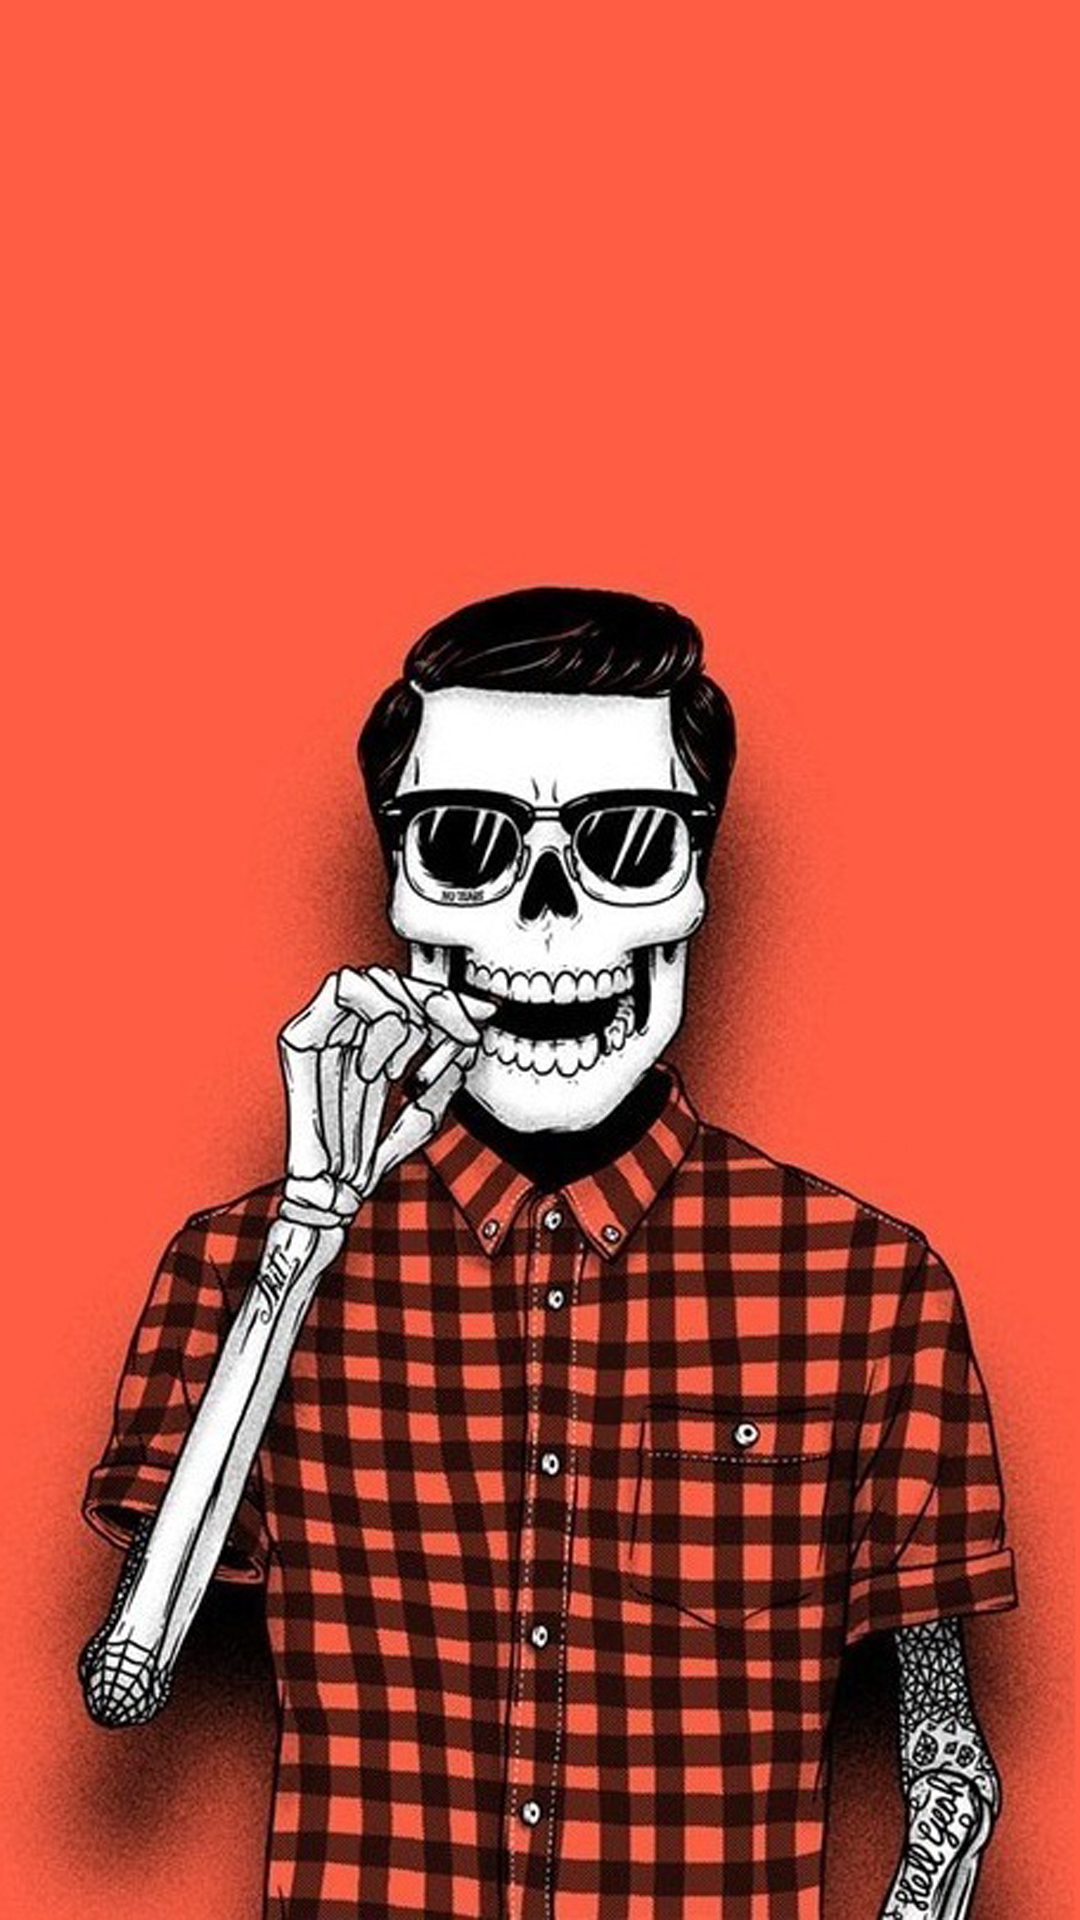 Hipster skeleton Halloween